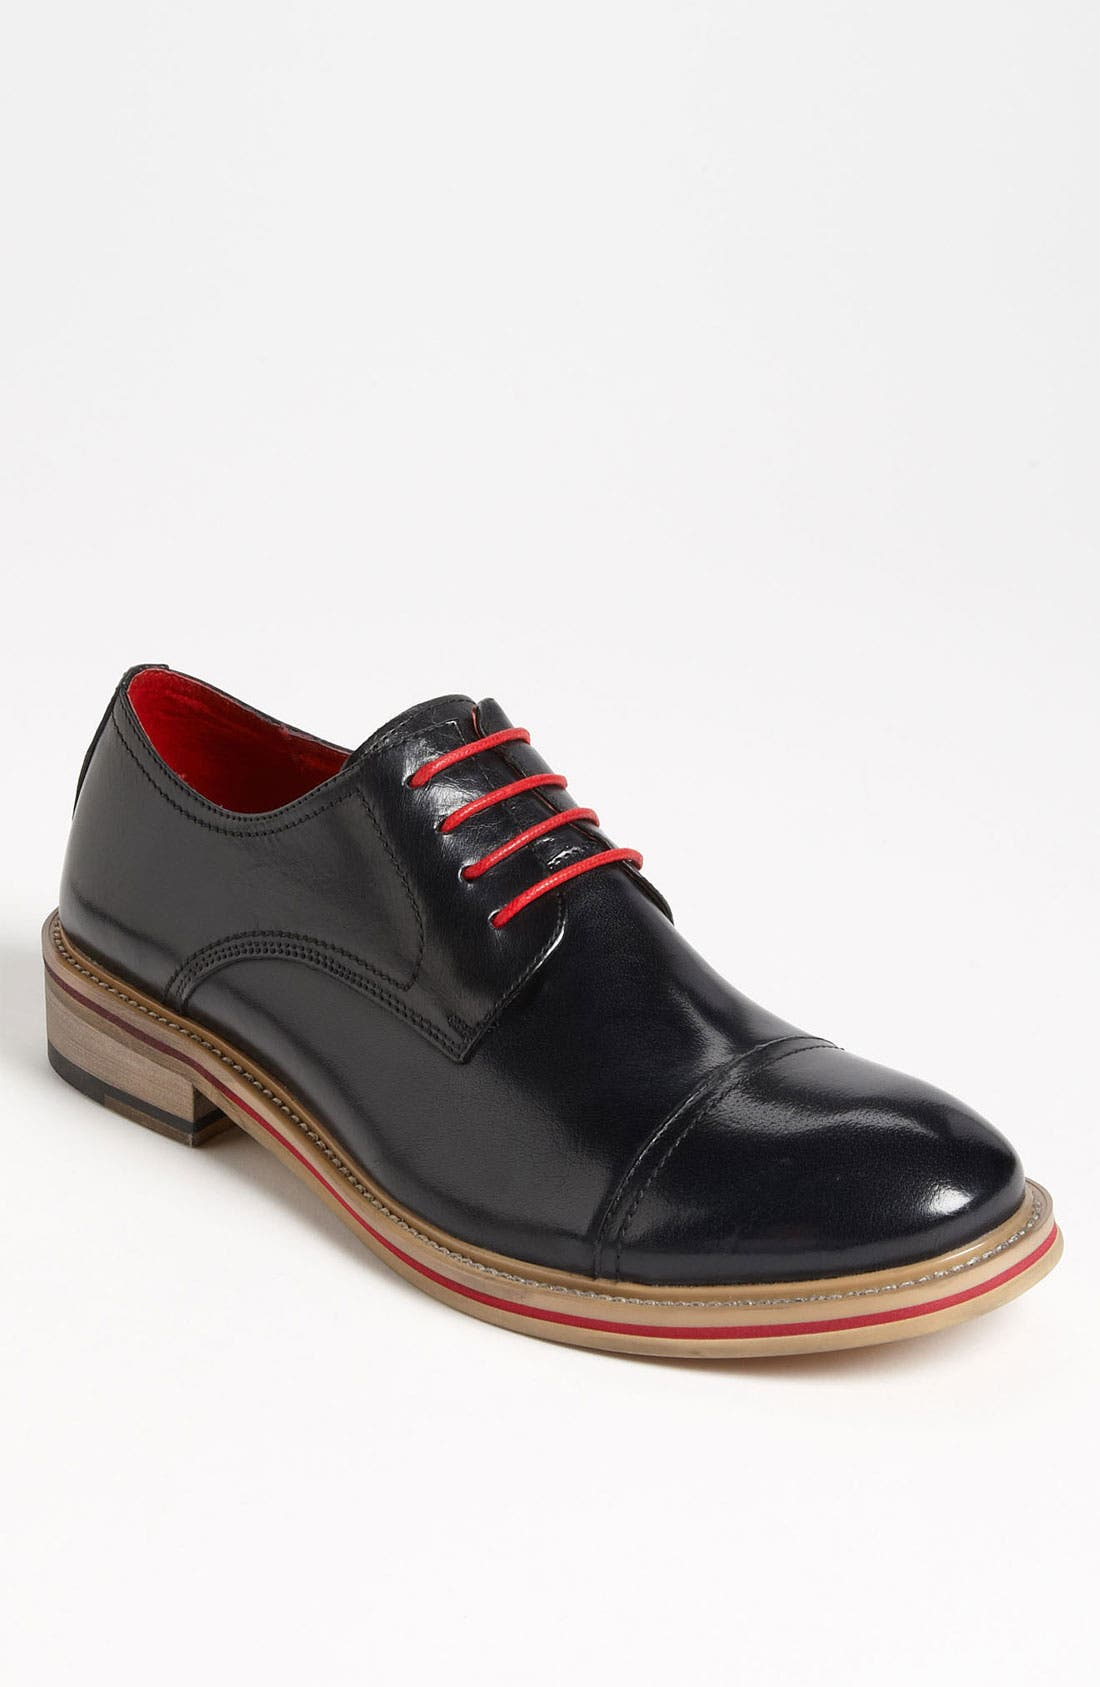 Main Image - Steve Madden 'Andiee' Oxford